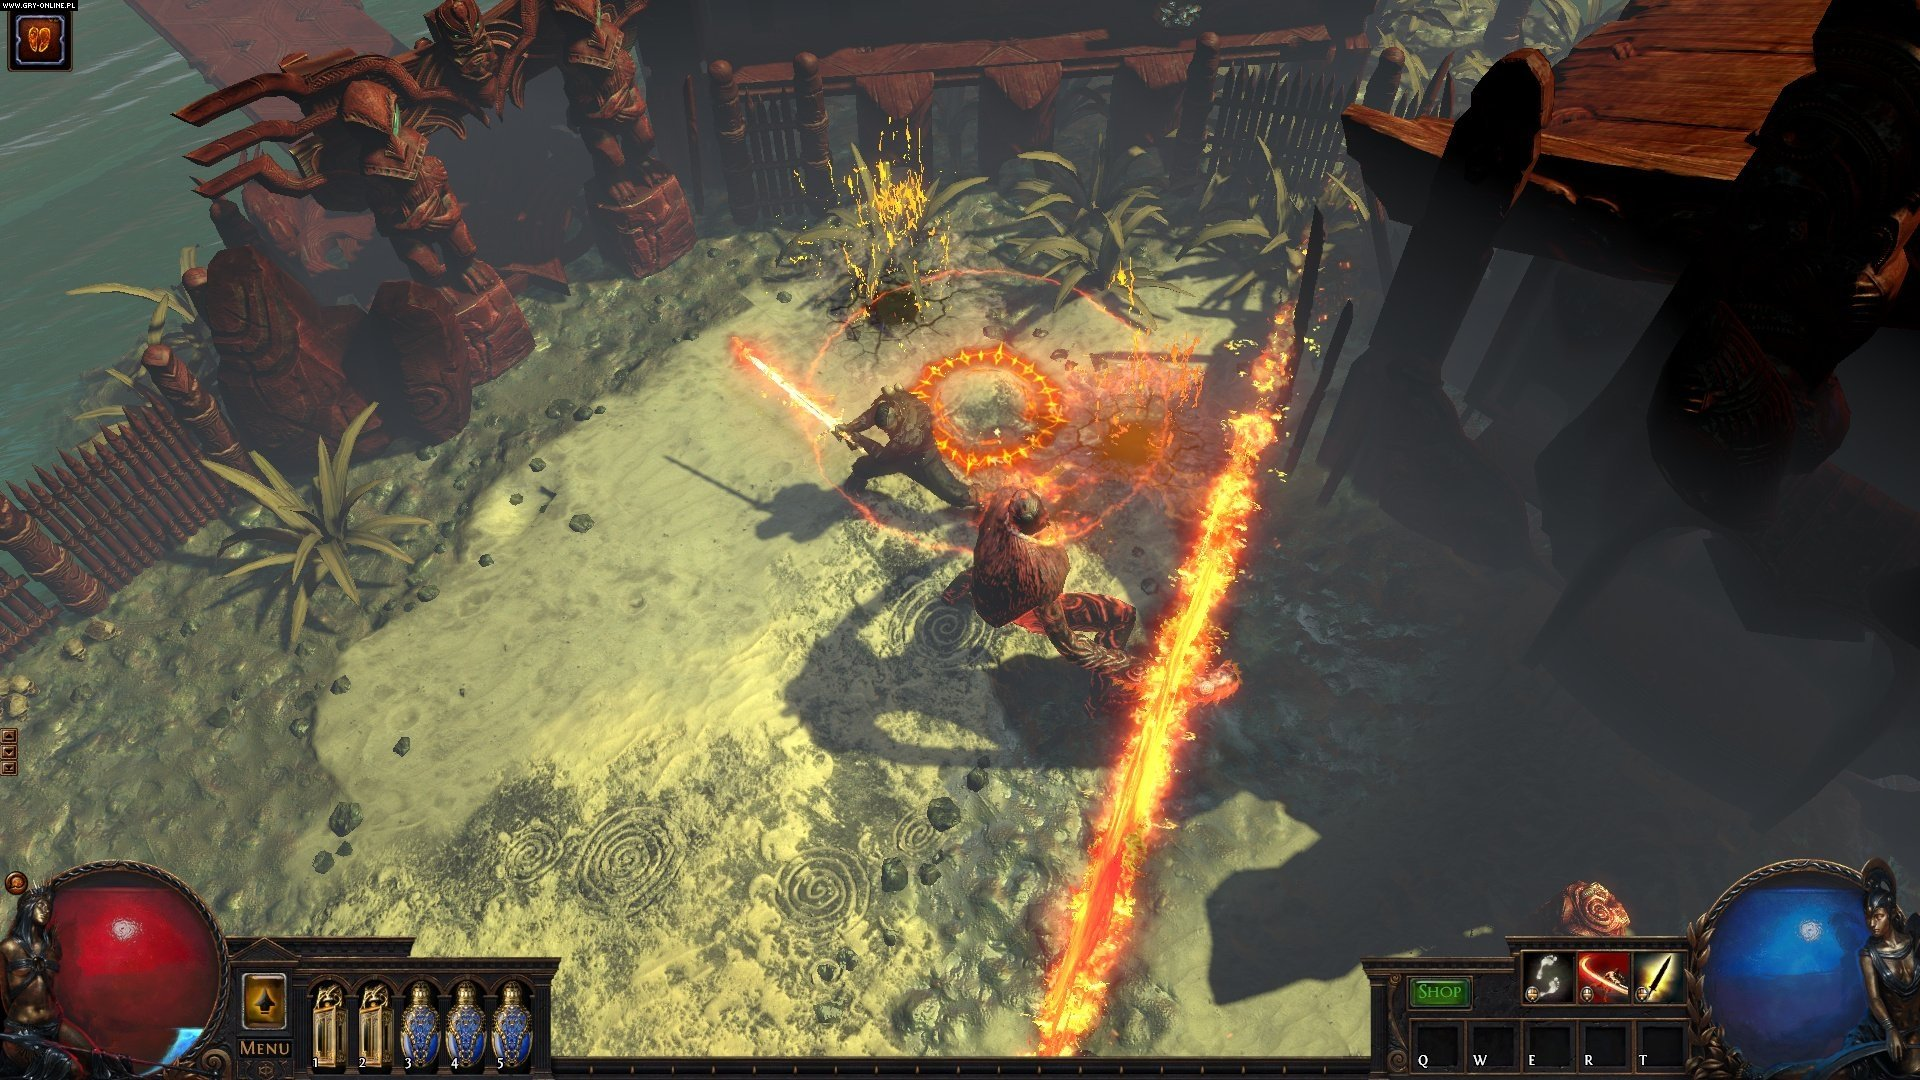 Path of Exile PC, XONE Games Image 5/69, Grinding Gear Games